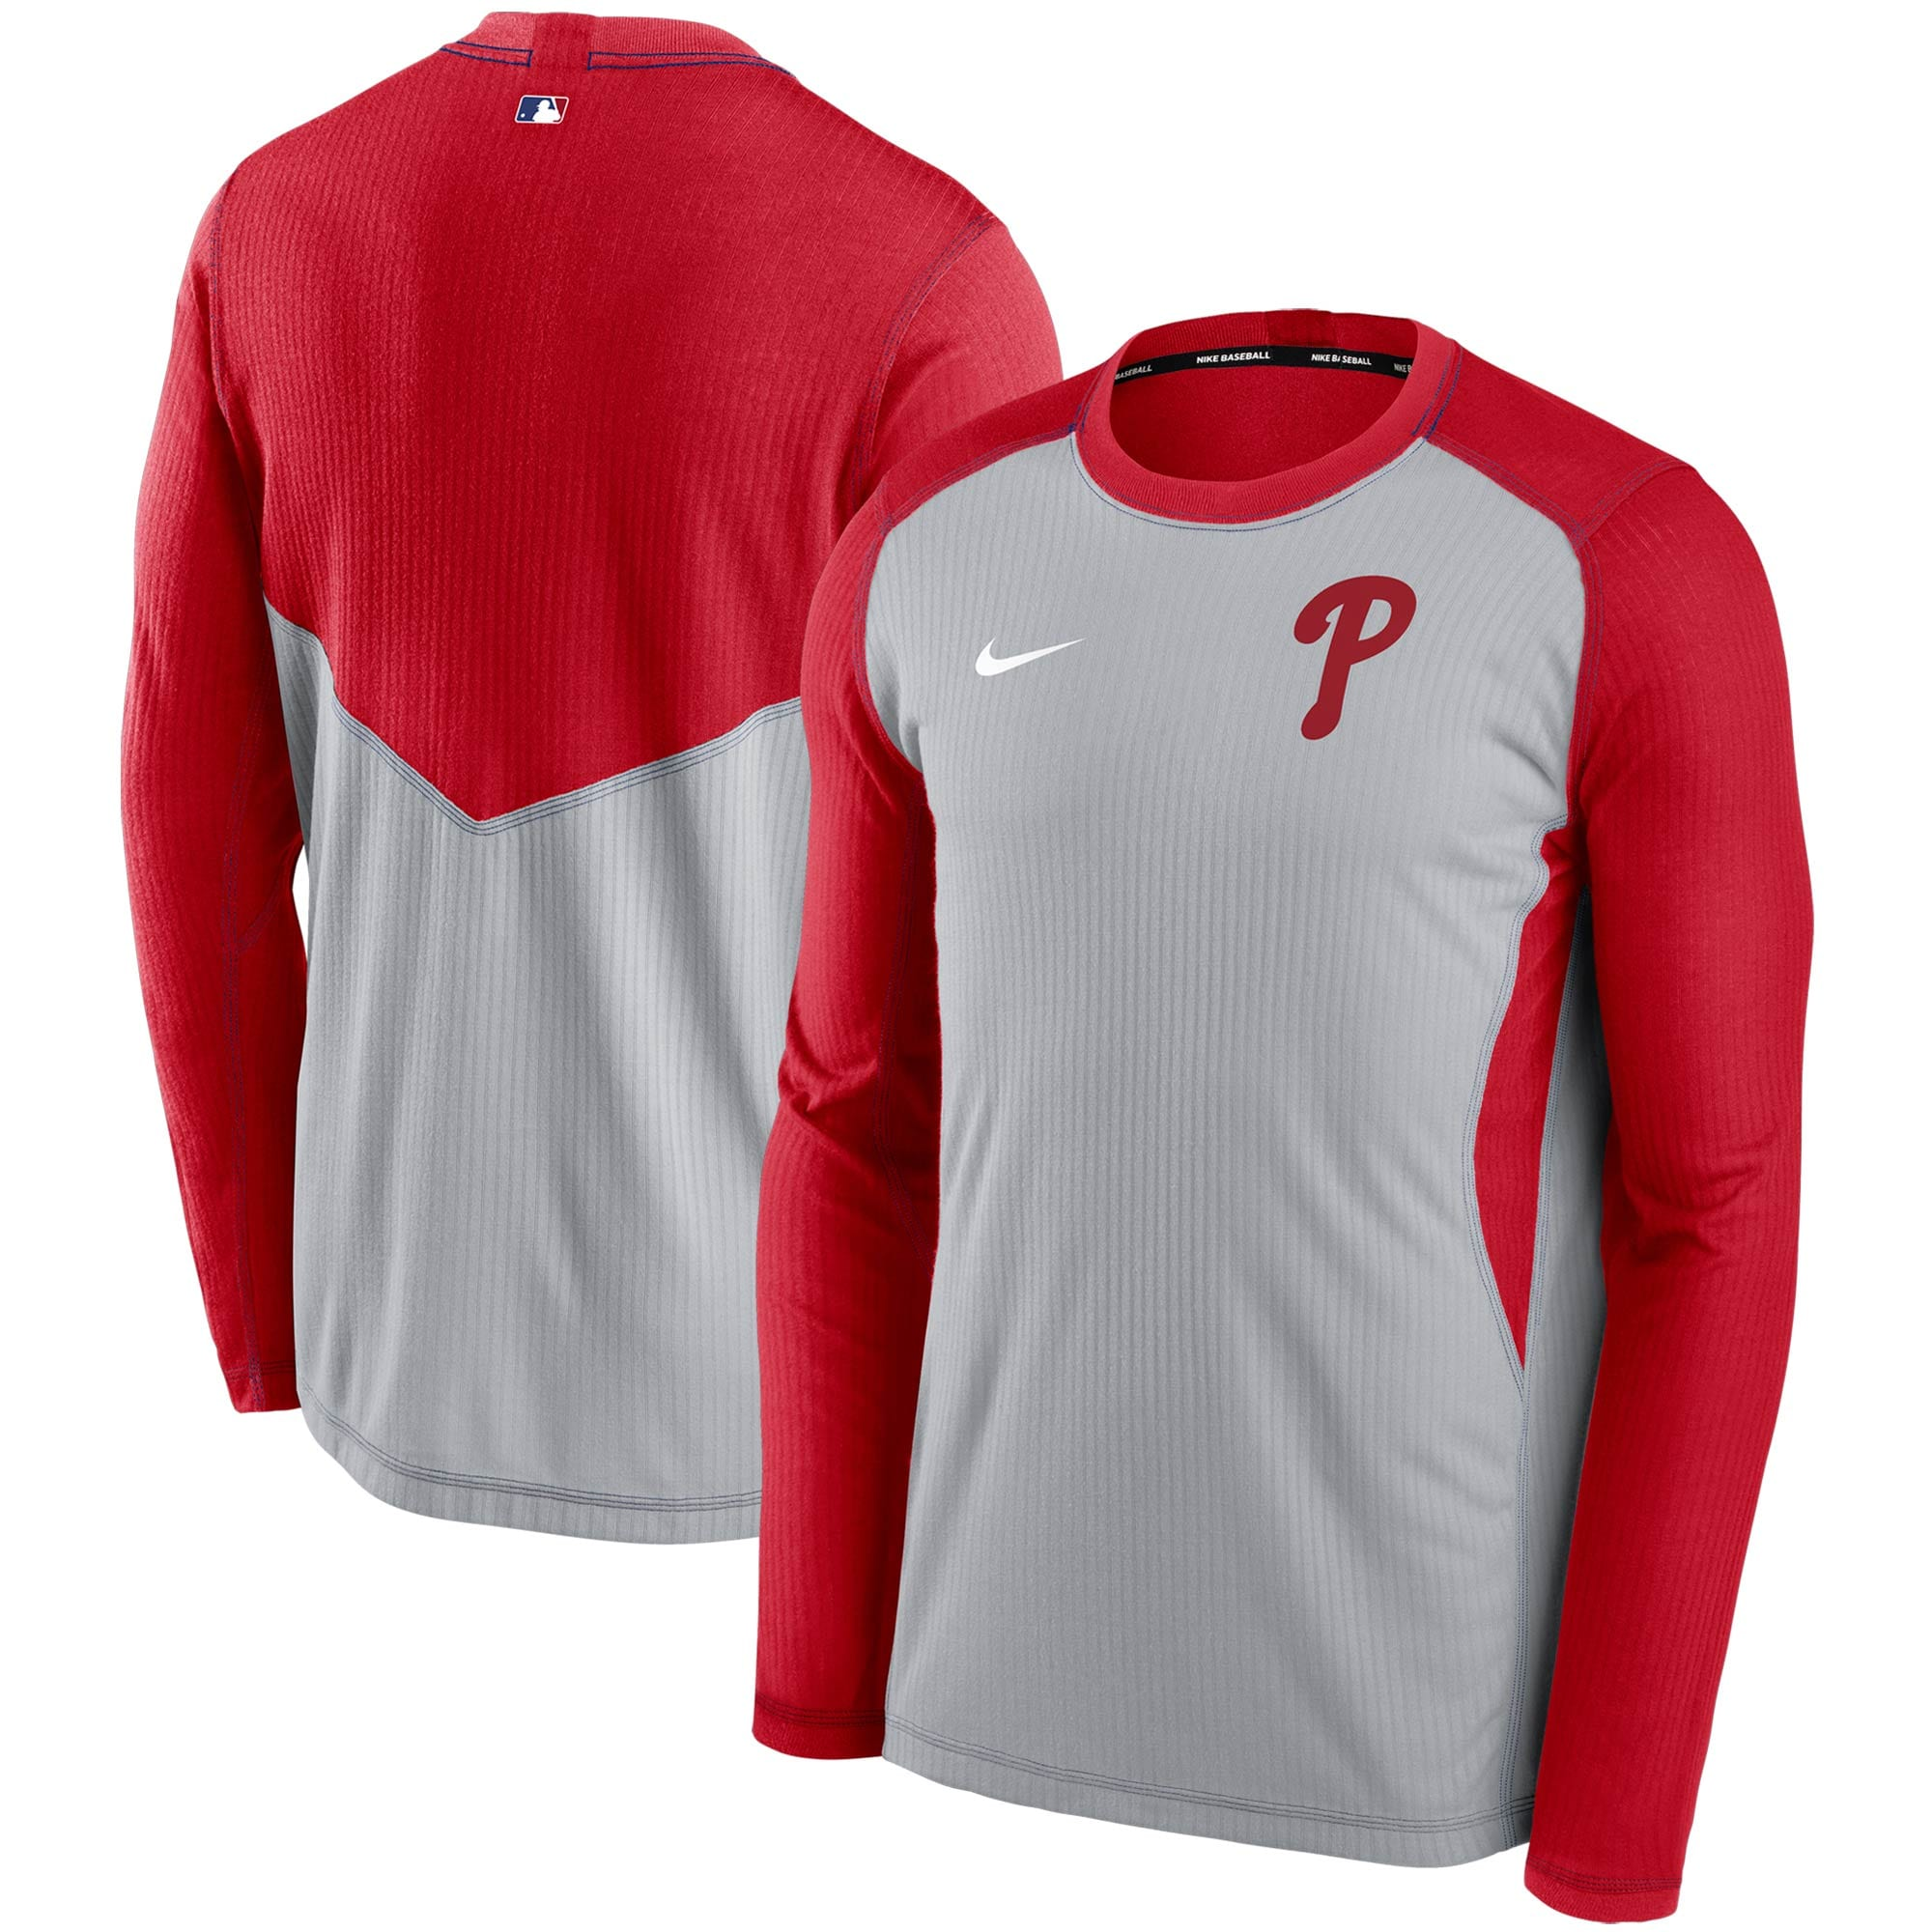 Philadelphia Phillies Nike Authentic Collection Game Performance Sweatshirt - Red/Gray